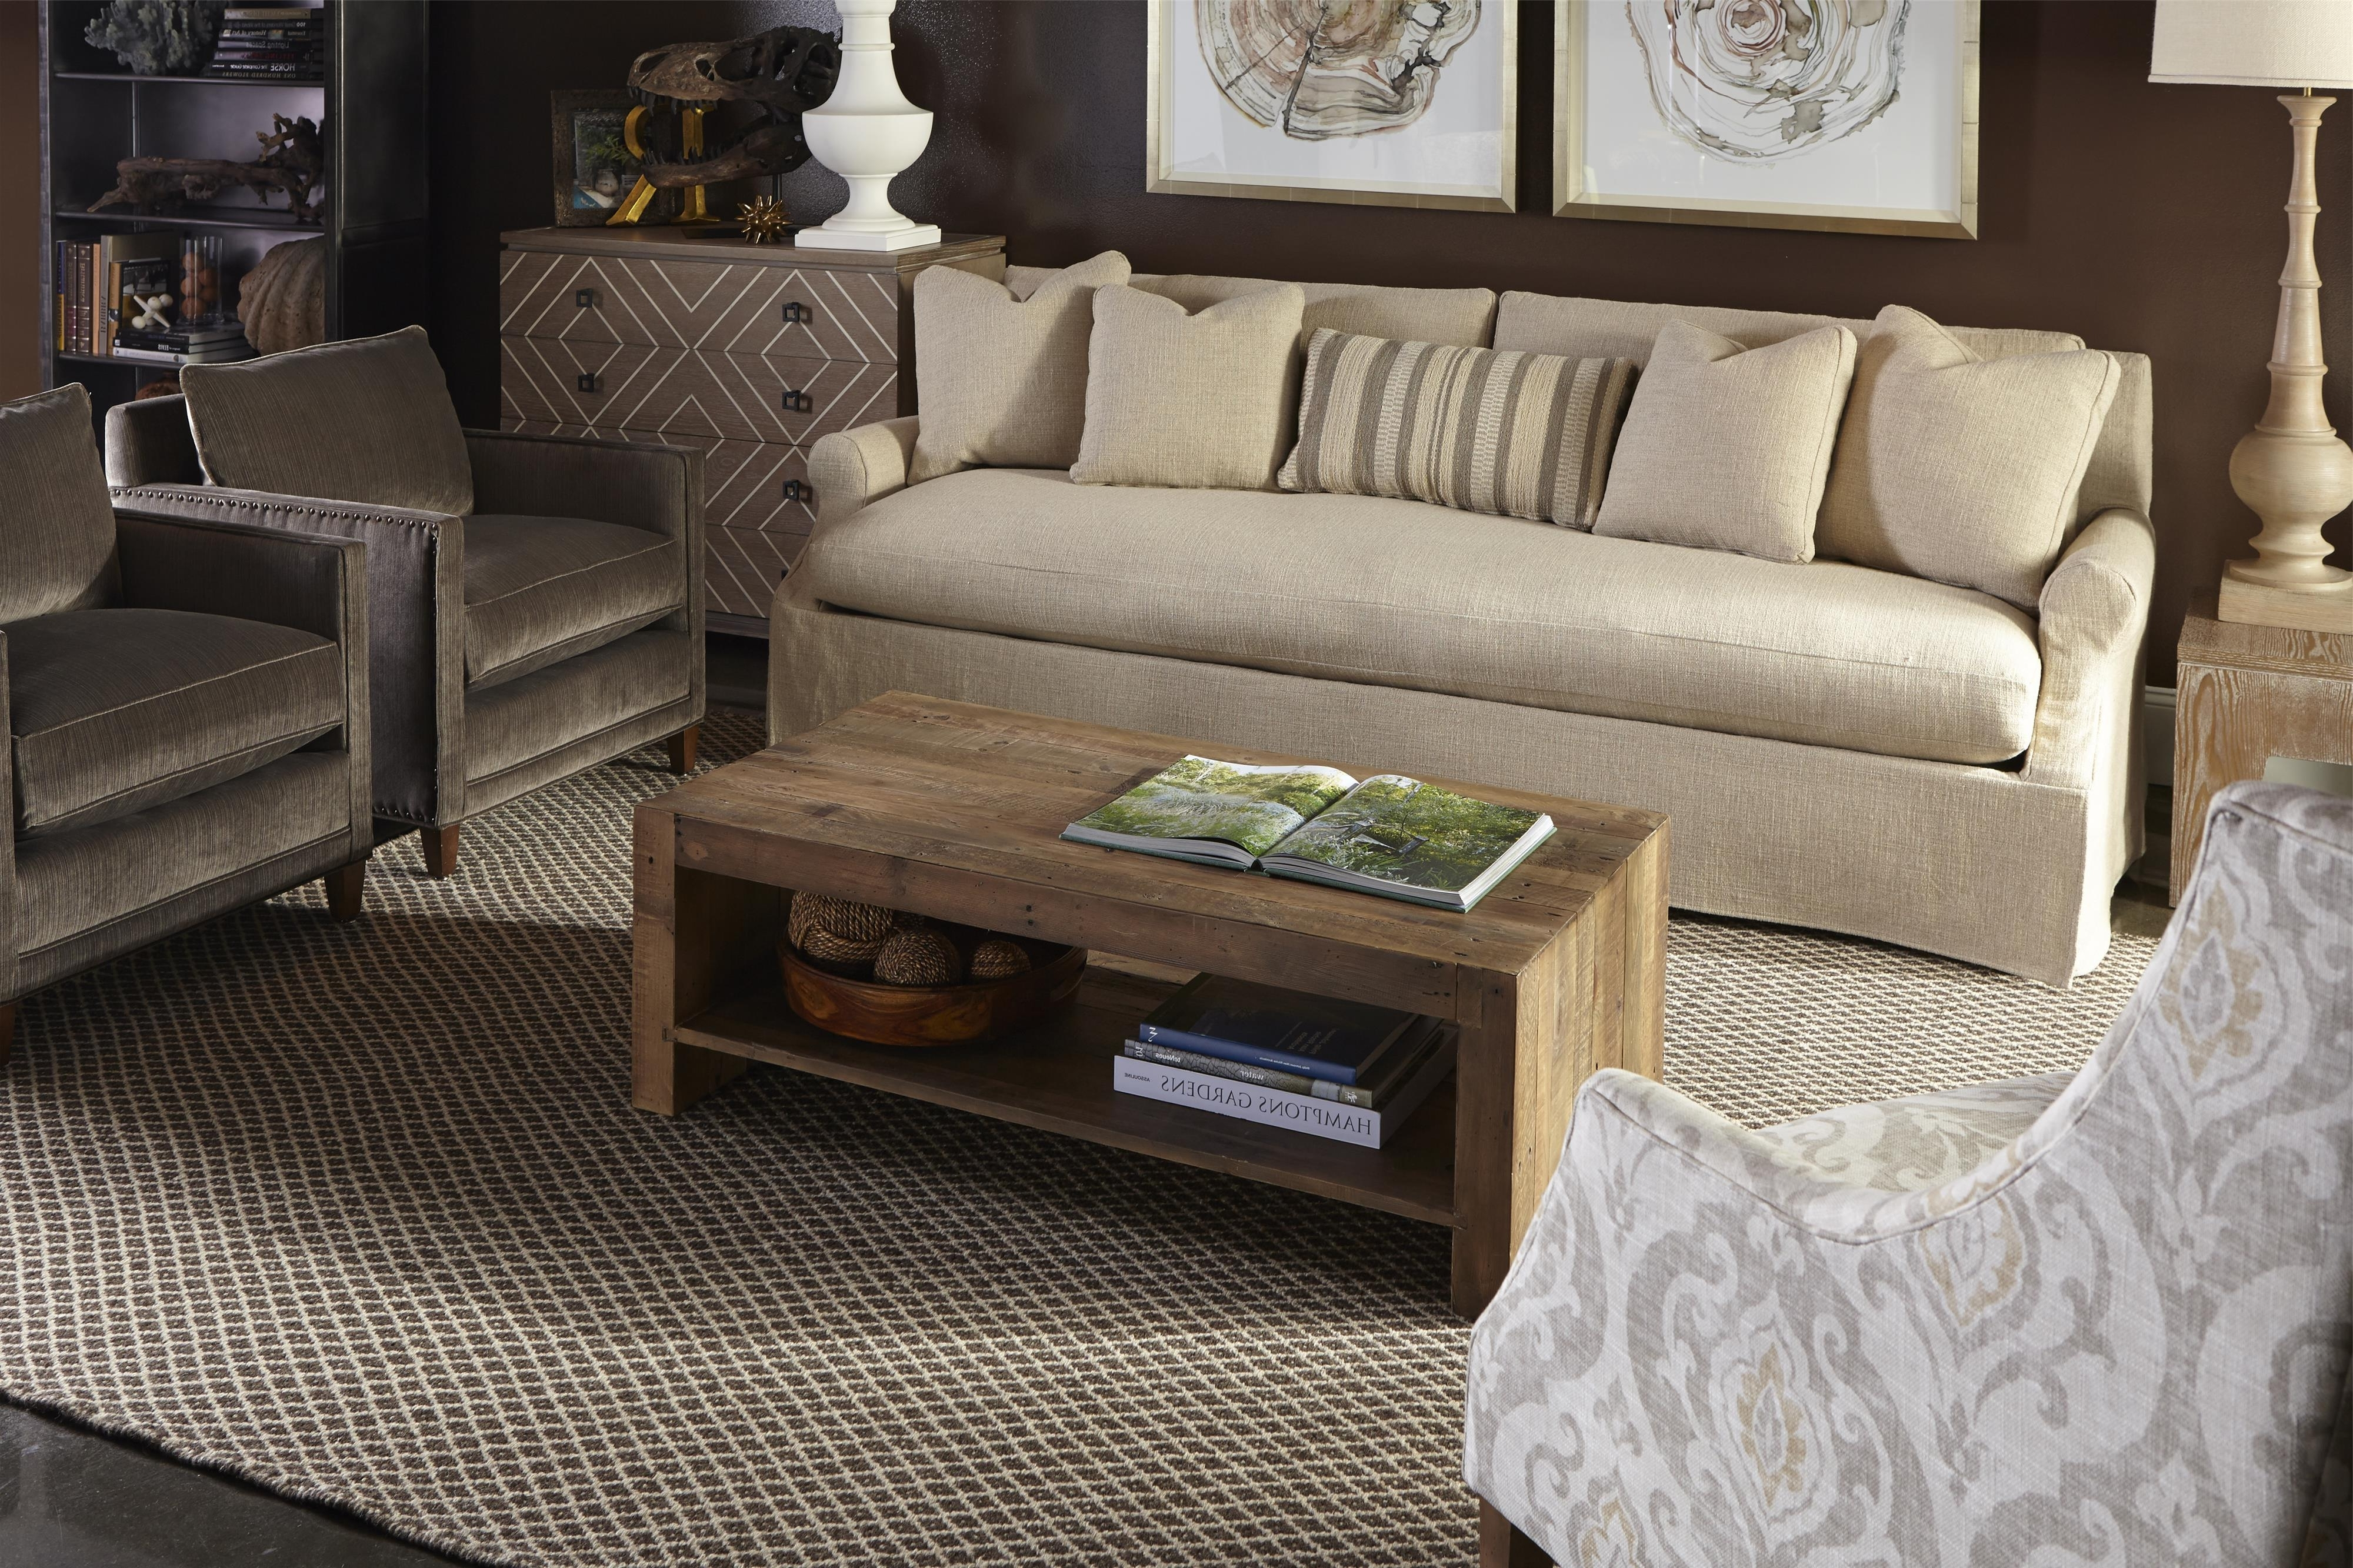 Bristol Sofas In Favorite Robin Bruce Bristol Sectional (View 20 of 20)